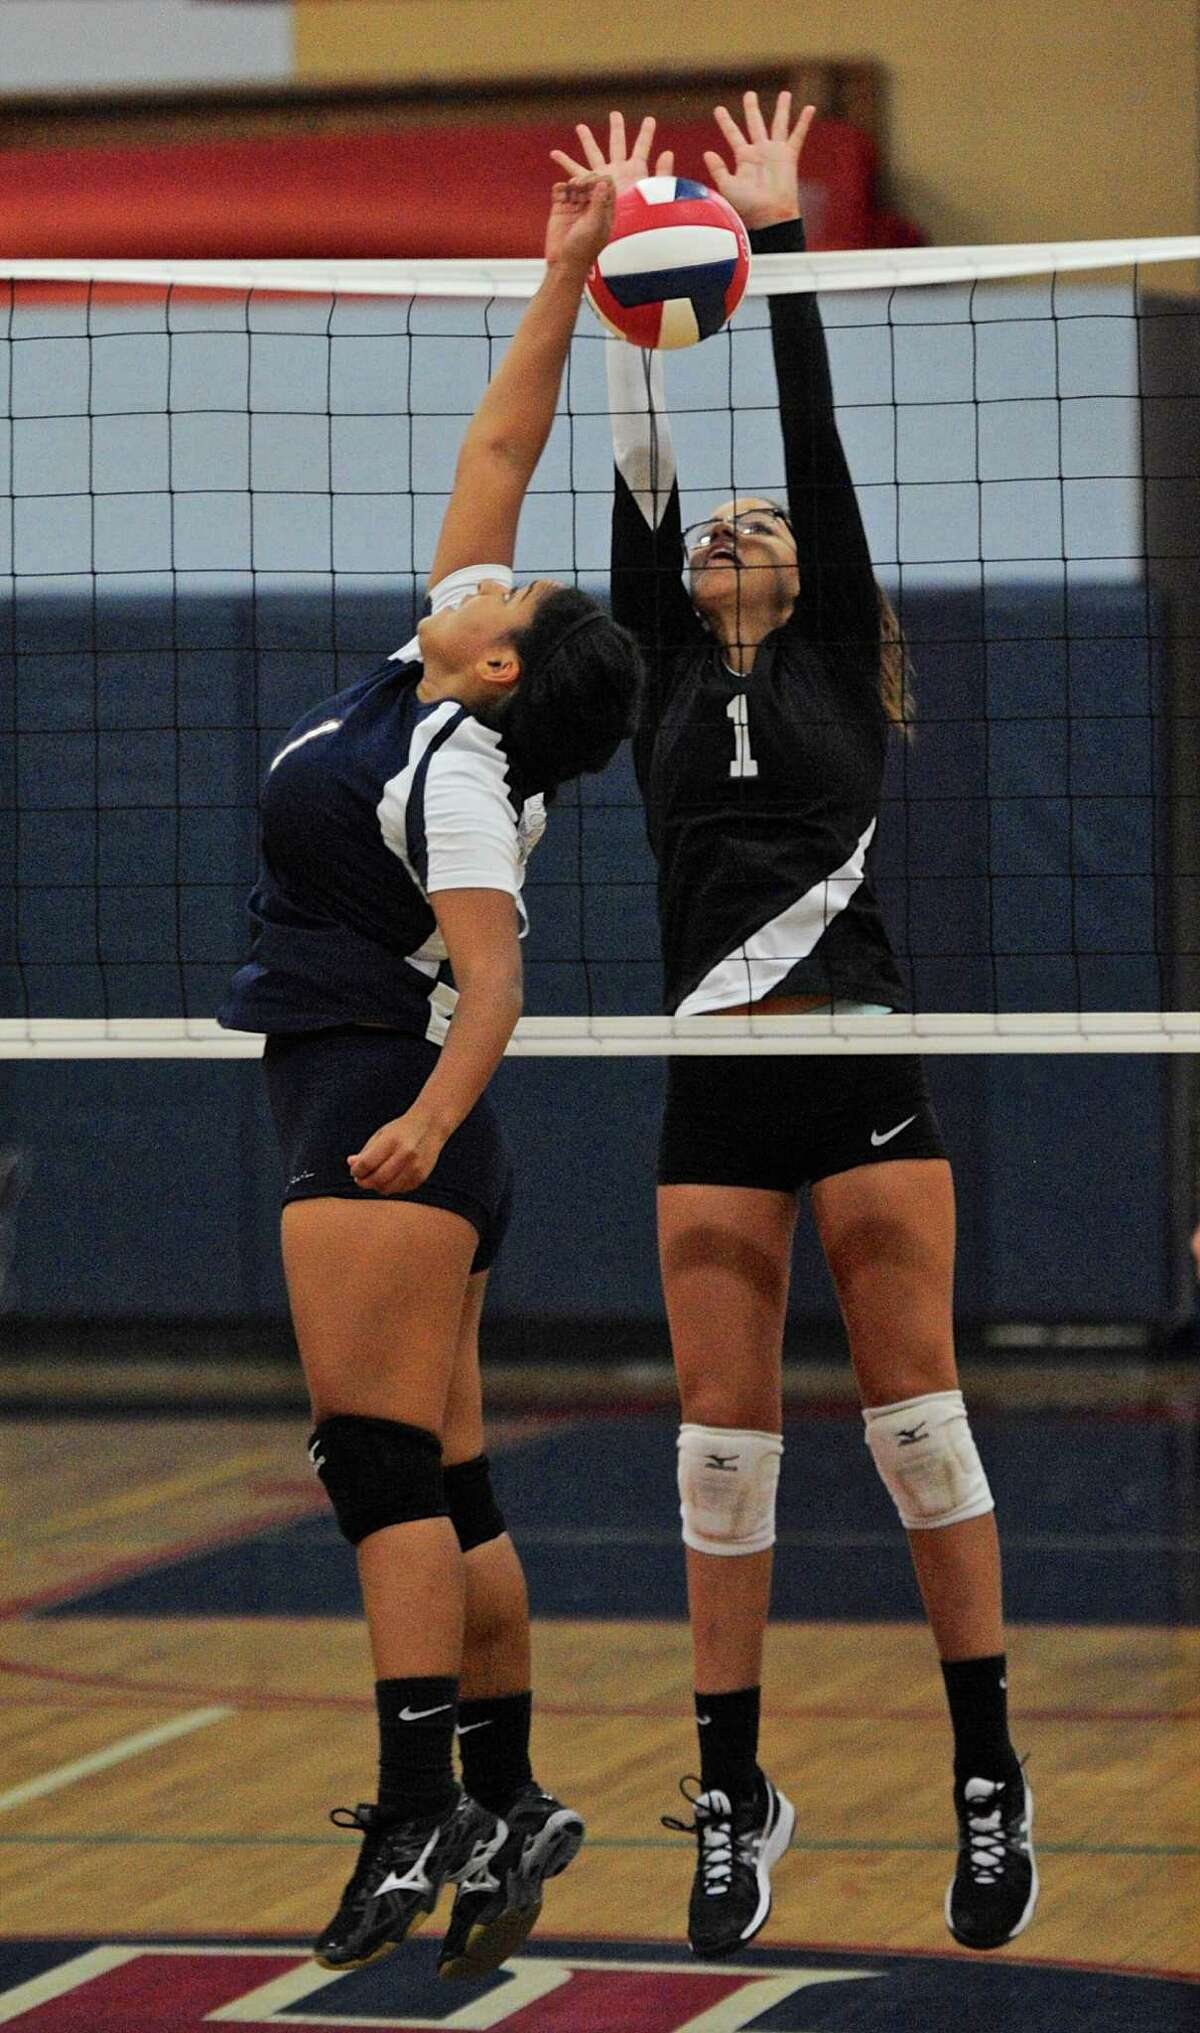 Bethel's Clarisa Rosario (1) blocks the ball hit by New Fairfield's Mia Maisonave (1) in the SWC girls volleyball game between Bethel and New Fairfield high schools. Wednesday, September 21, 2016, at New Fairfield High School, New Fairfield, Conn.